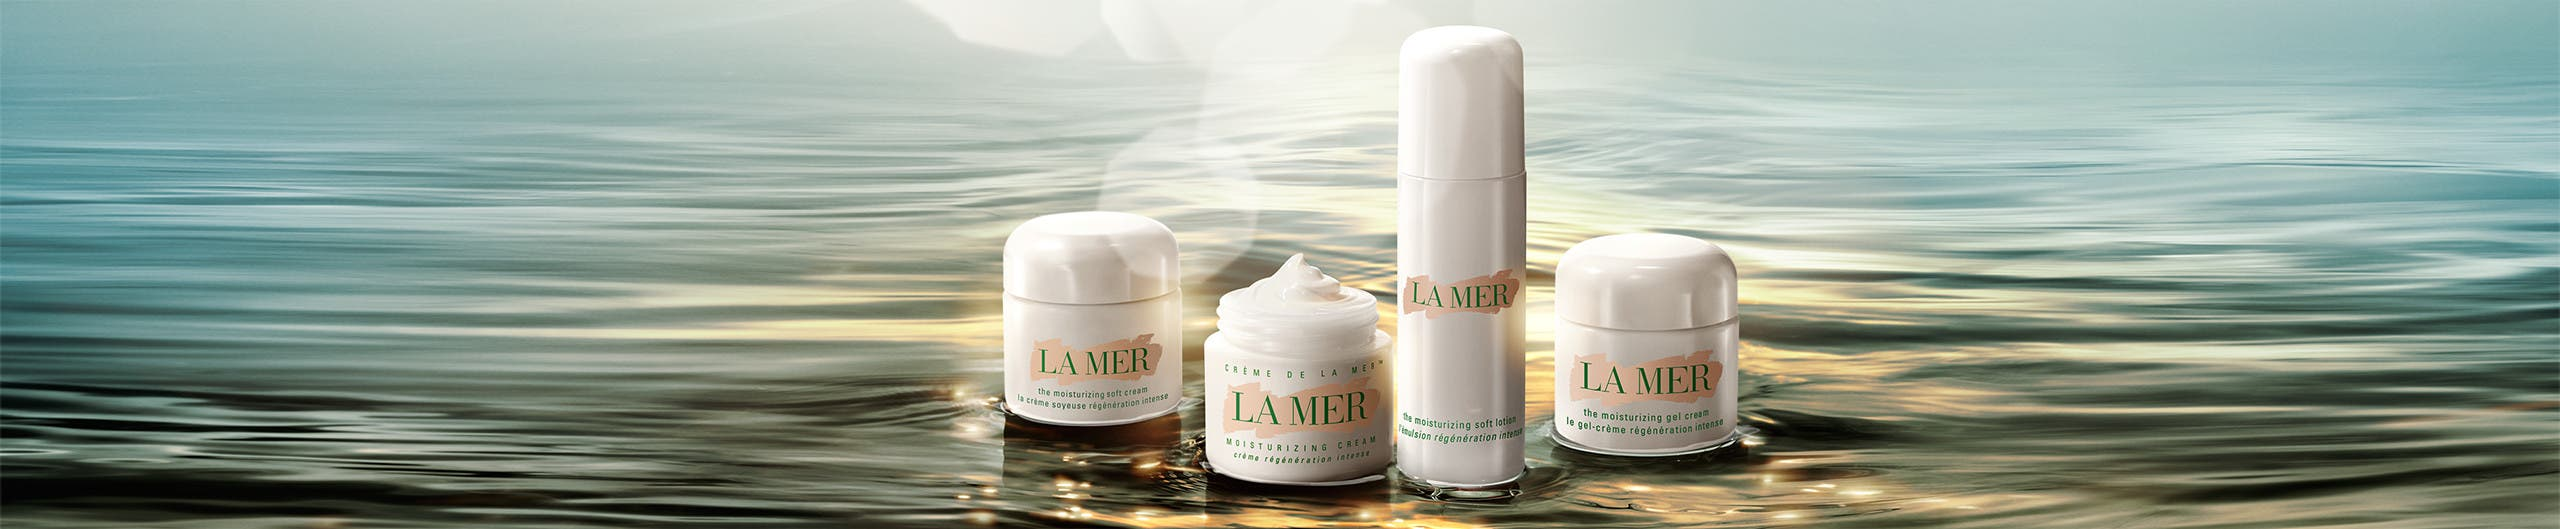 Endless transformation: La Mer moisturizer collection.